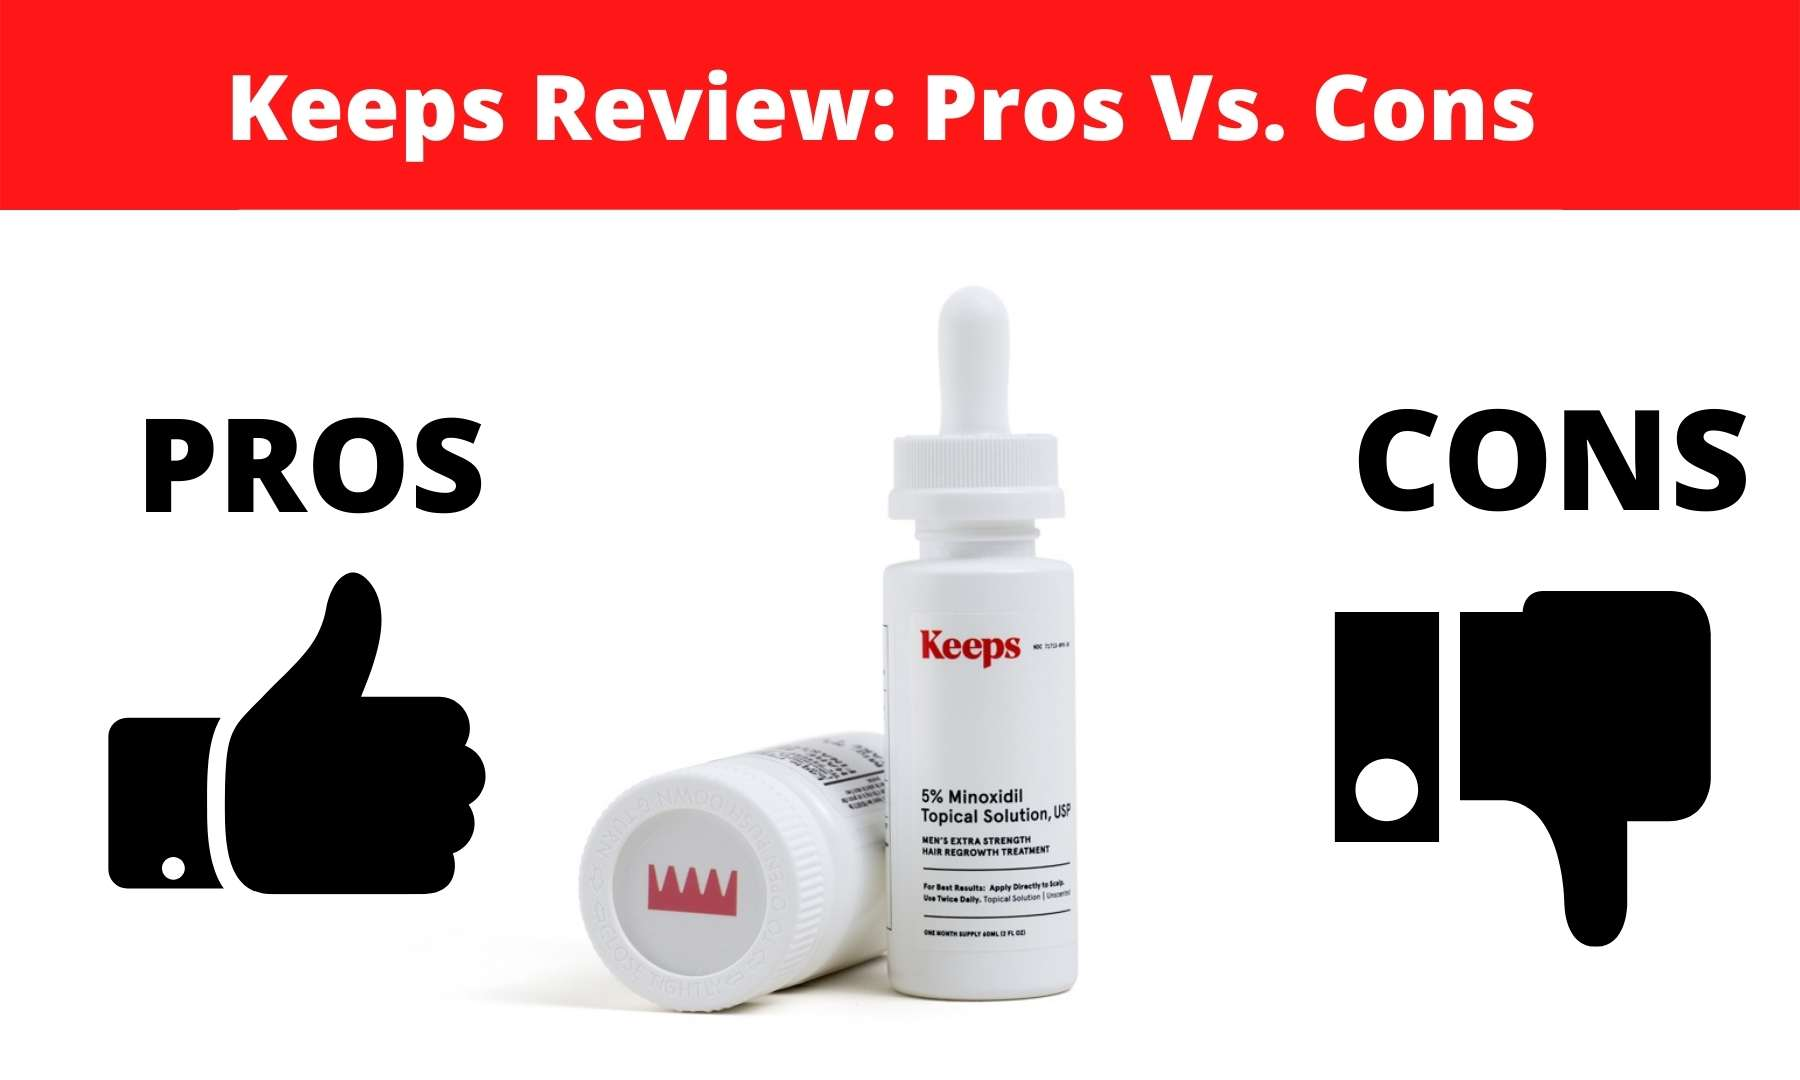 Keeps Review: pros and cons